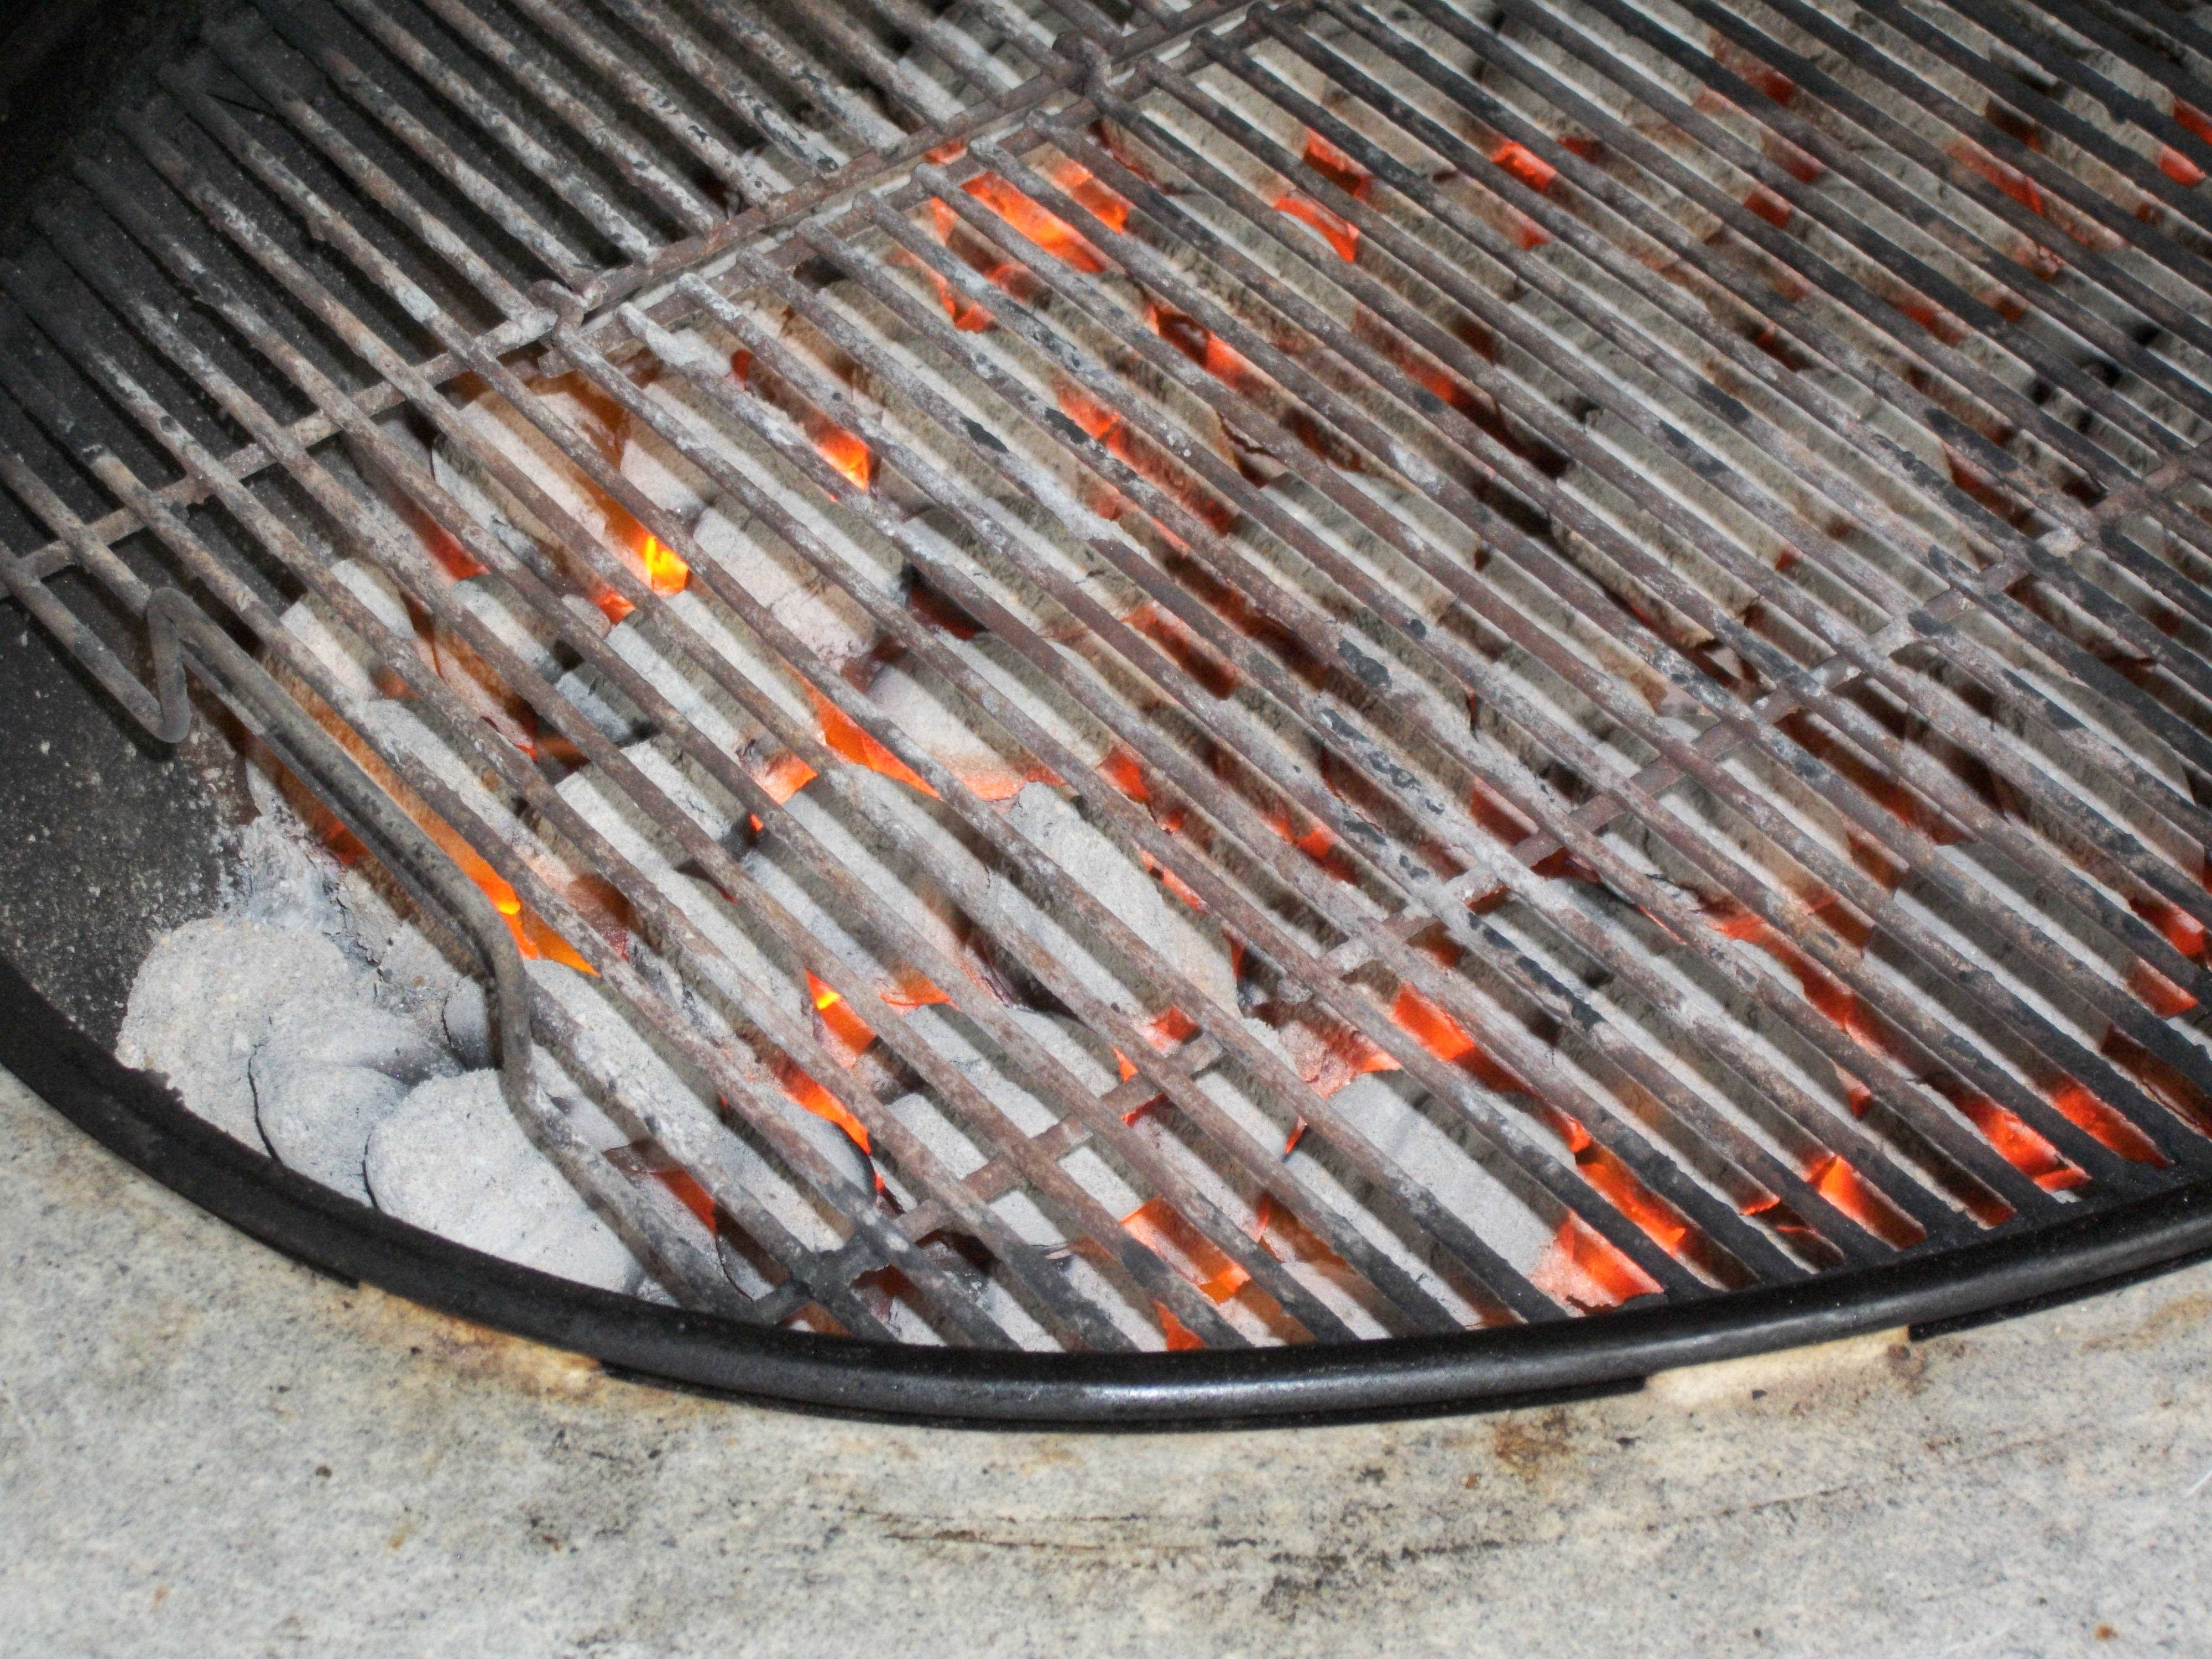 Hot coals in grill photo